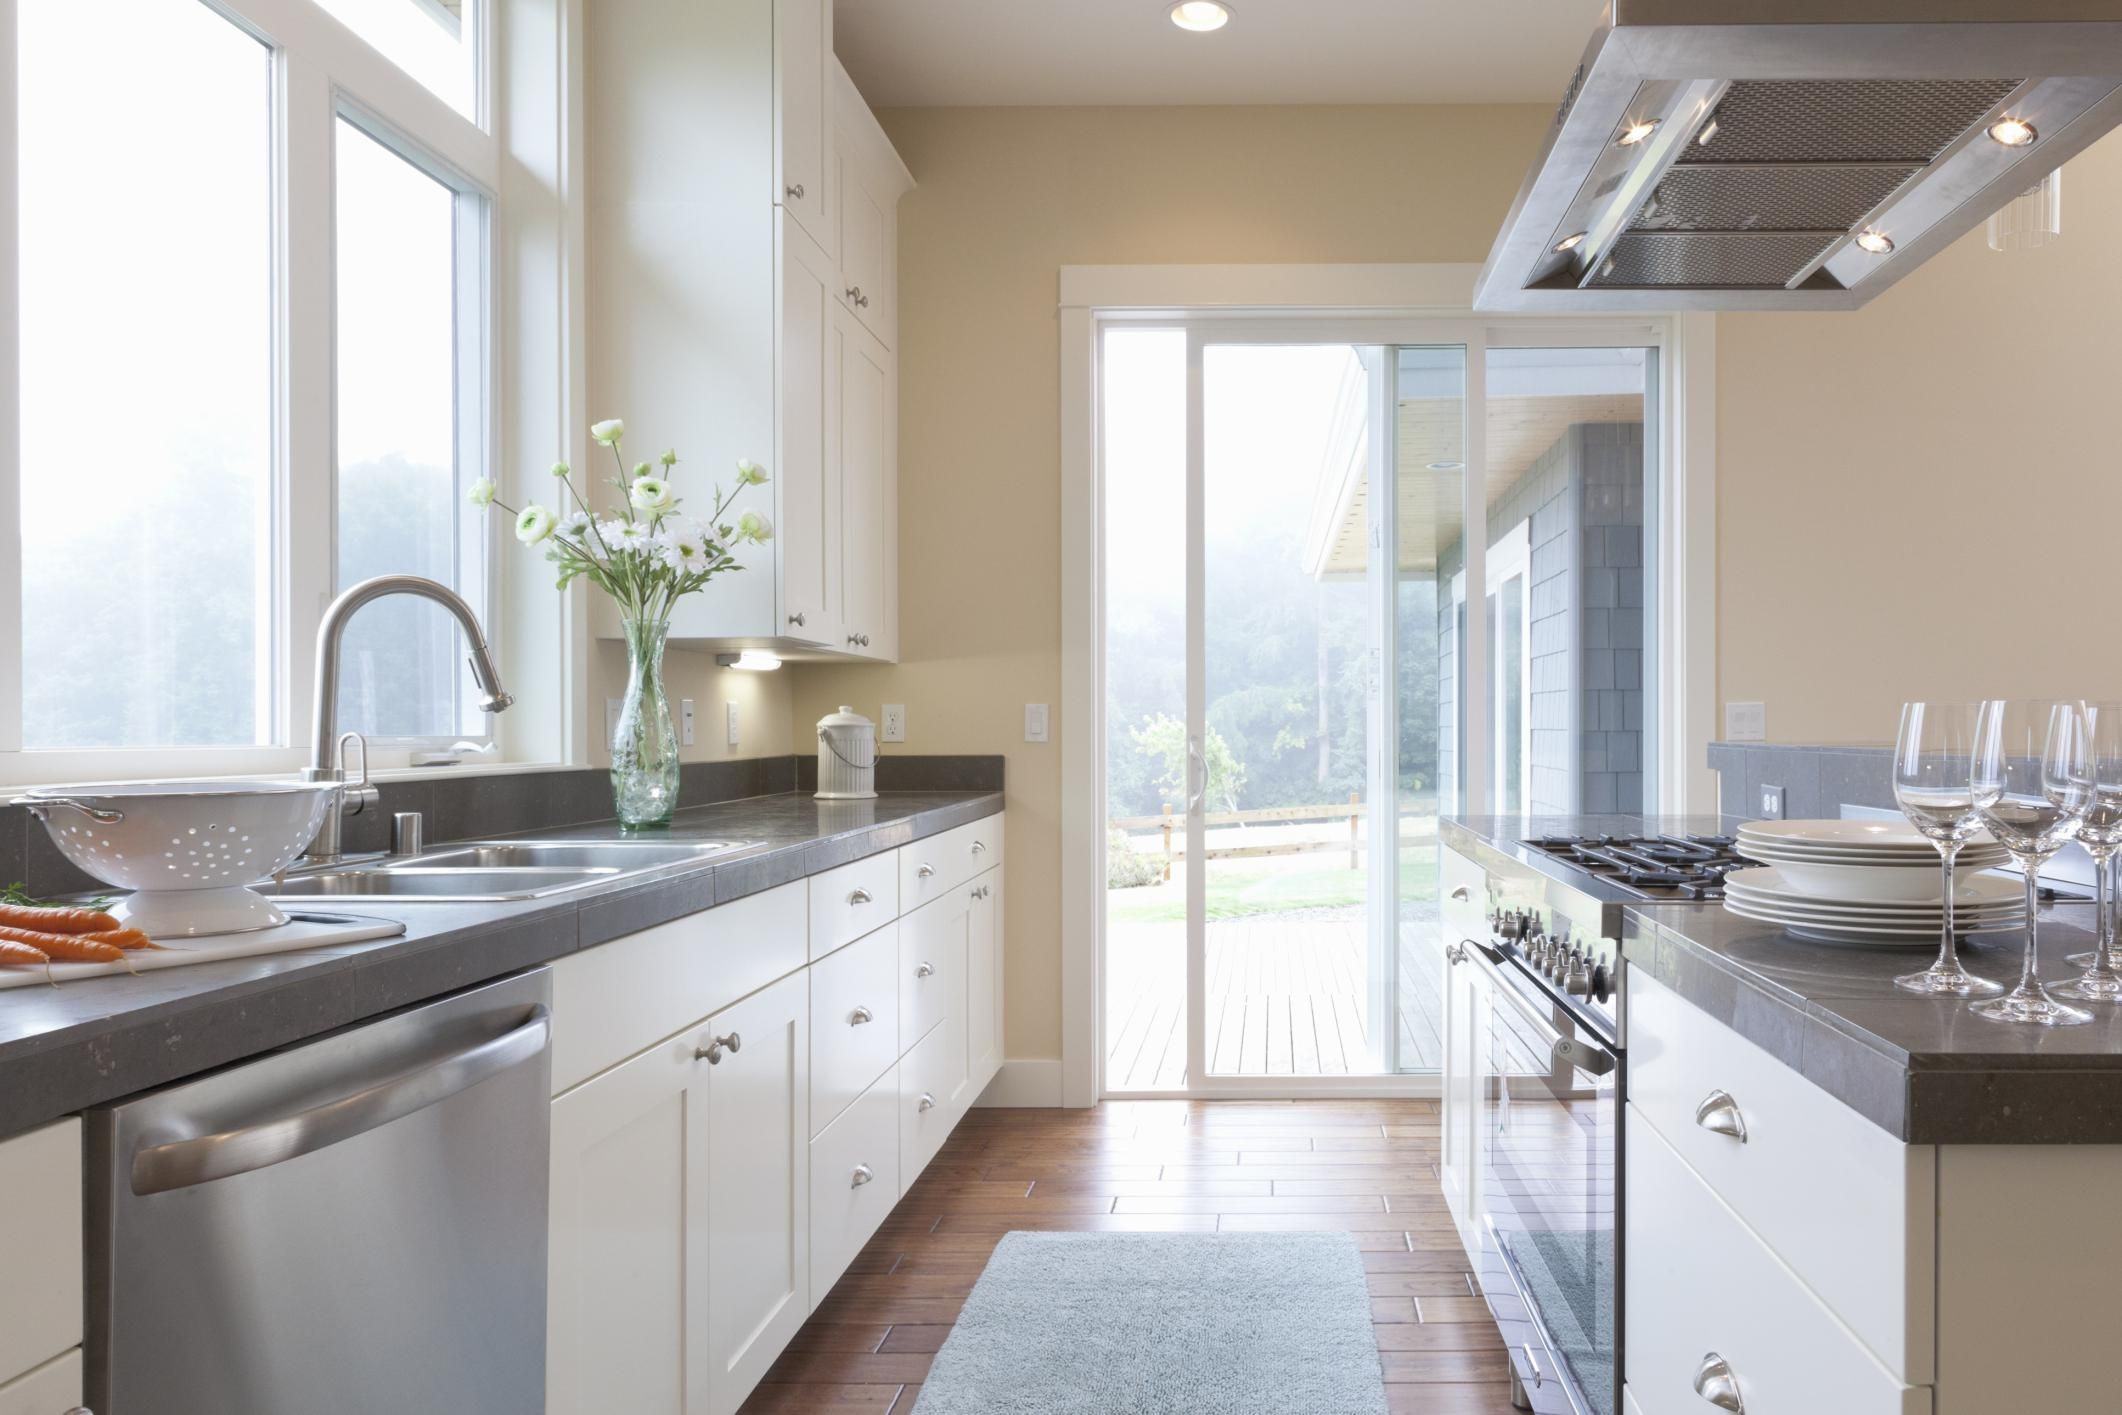 cabinet and countertop height  The Optimal Kitchen Countertop Height - cabinet and countertop height